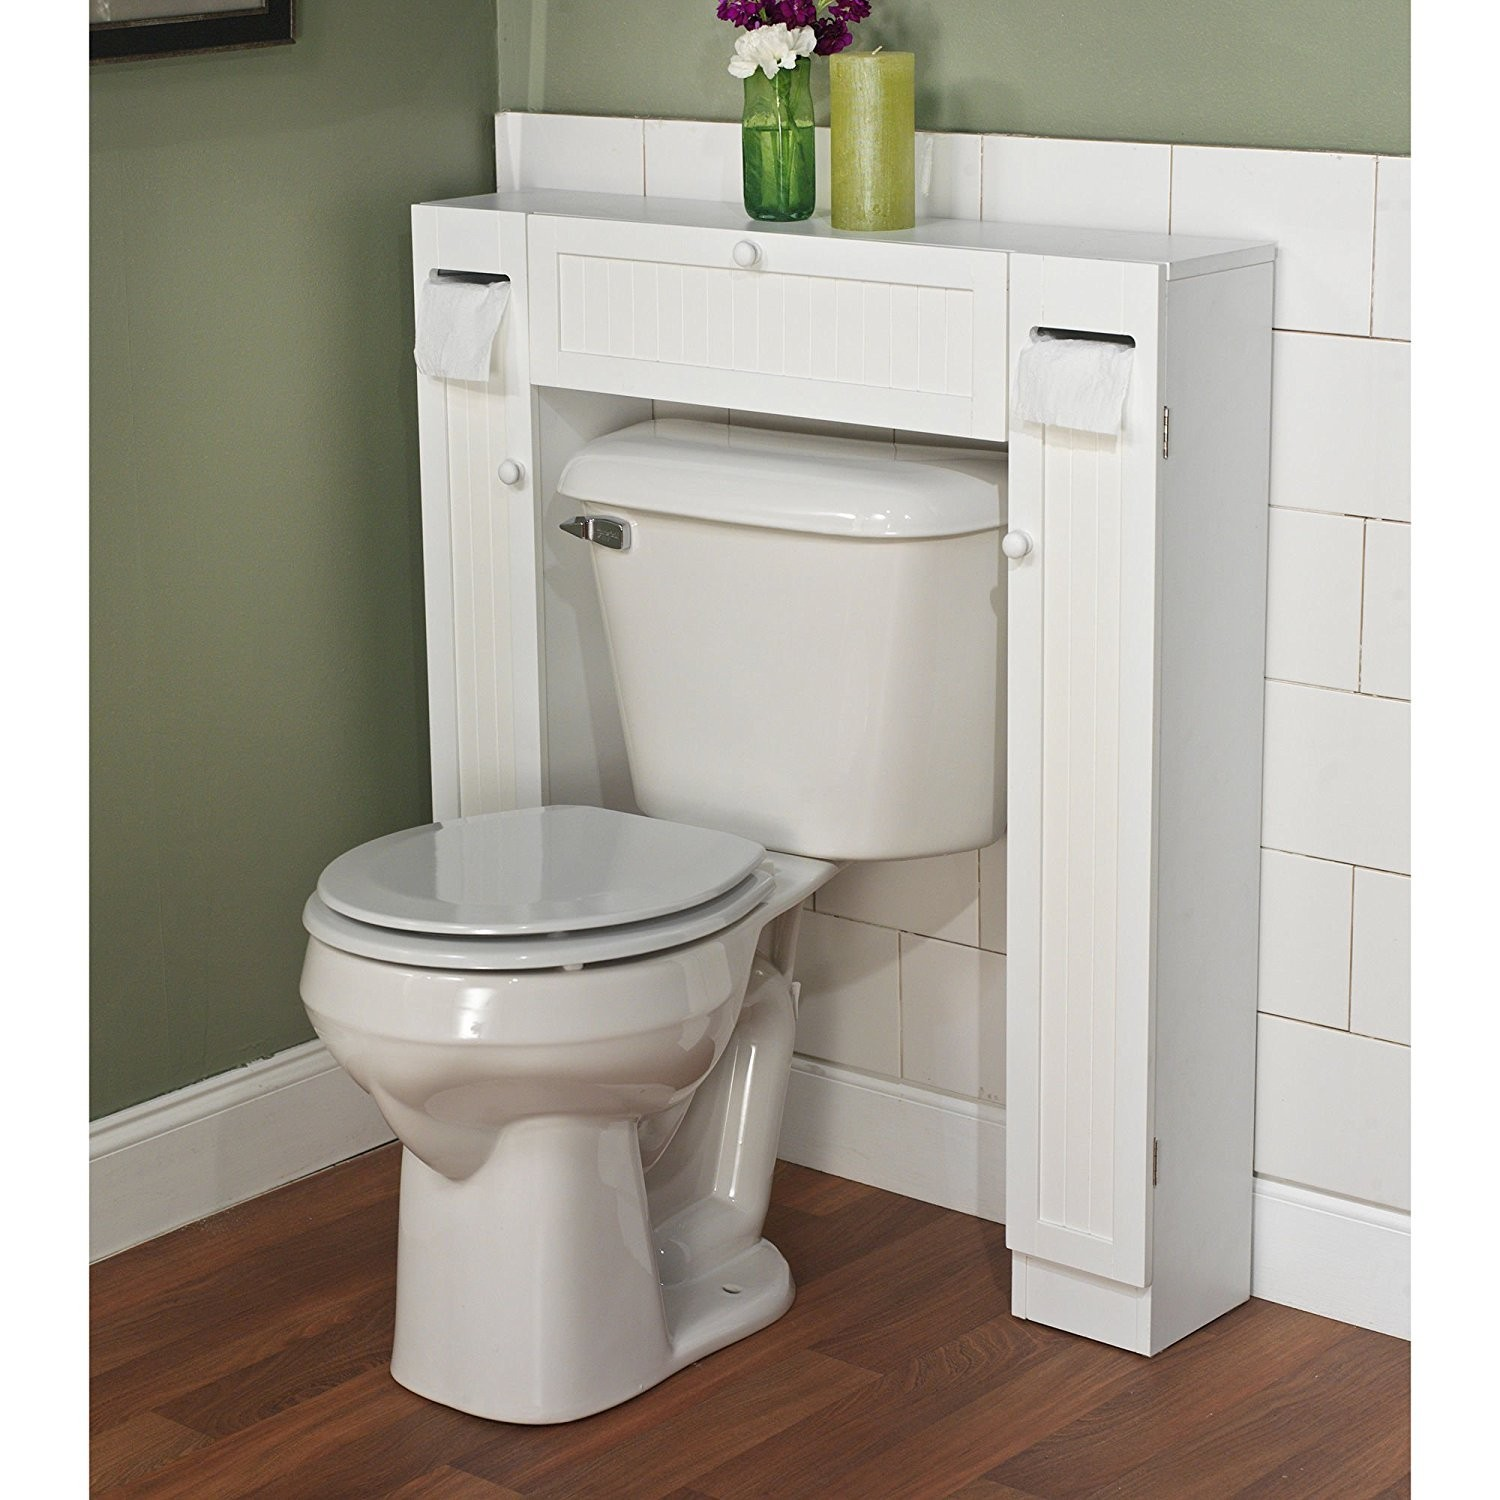 Bathroom Space Saver Over toilet Contemporary Amazon Over the toilet Space Saver by Simple Living 1 Center Image